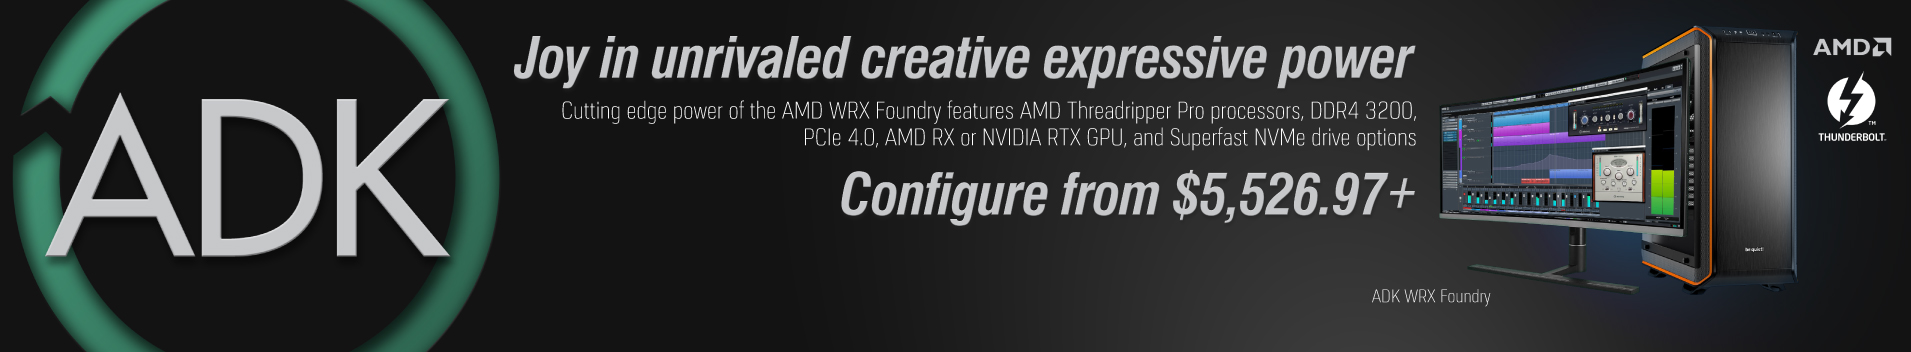 AMD WRX Foundry features AMD Threadripper Pro processors, DDR 3200, PCIe 4.0, AMD RX or NVIDIA RTX GPU, and Superfast NVMe drive options.